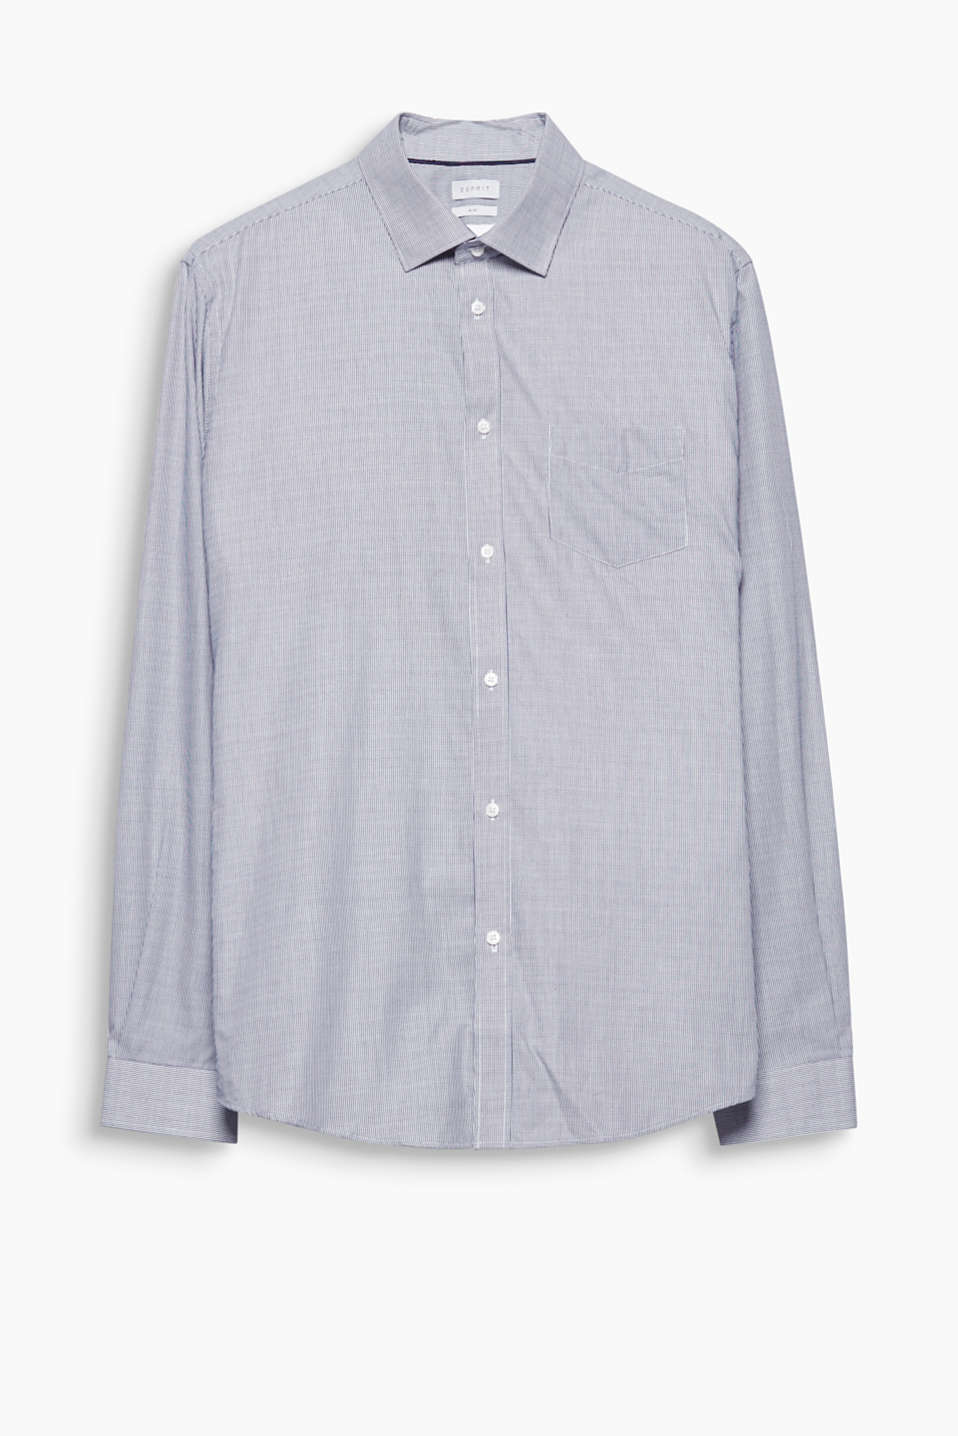 No wardrobe should be without this classic, pure cotton shirt with a new Kent collar